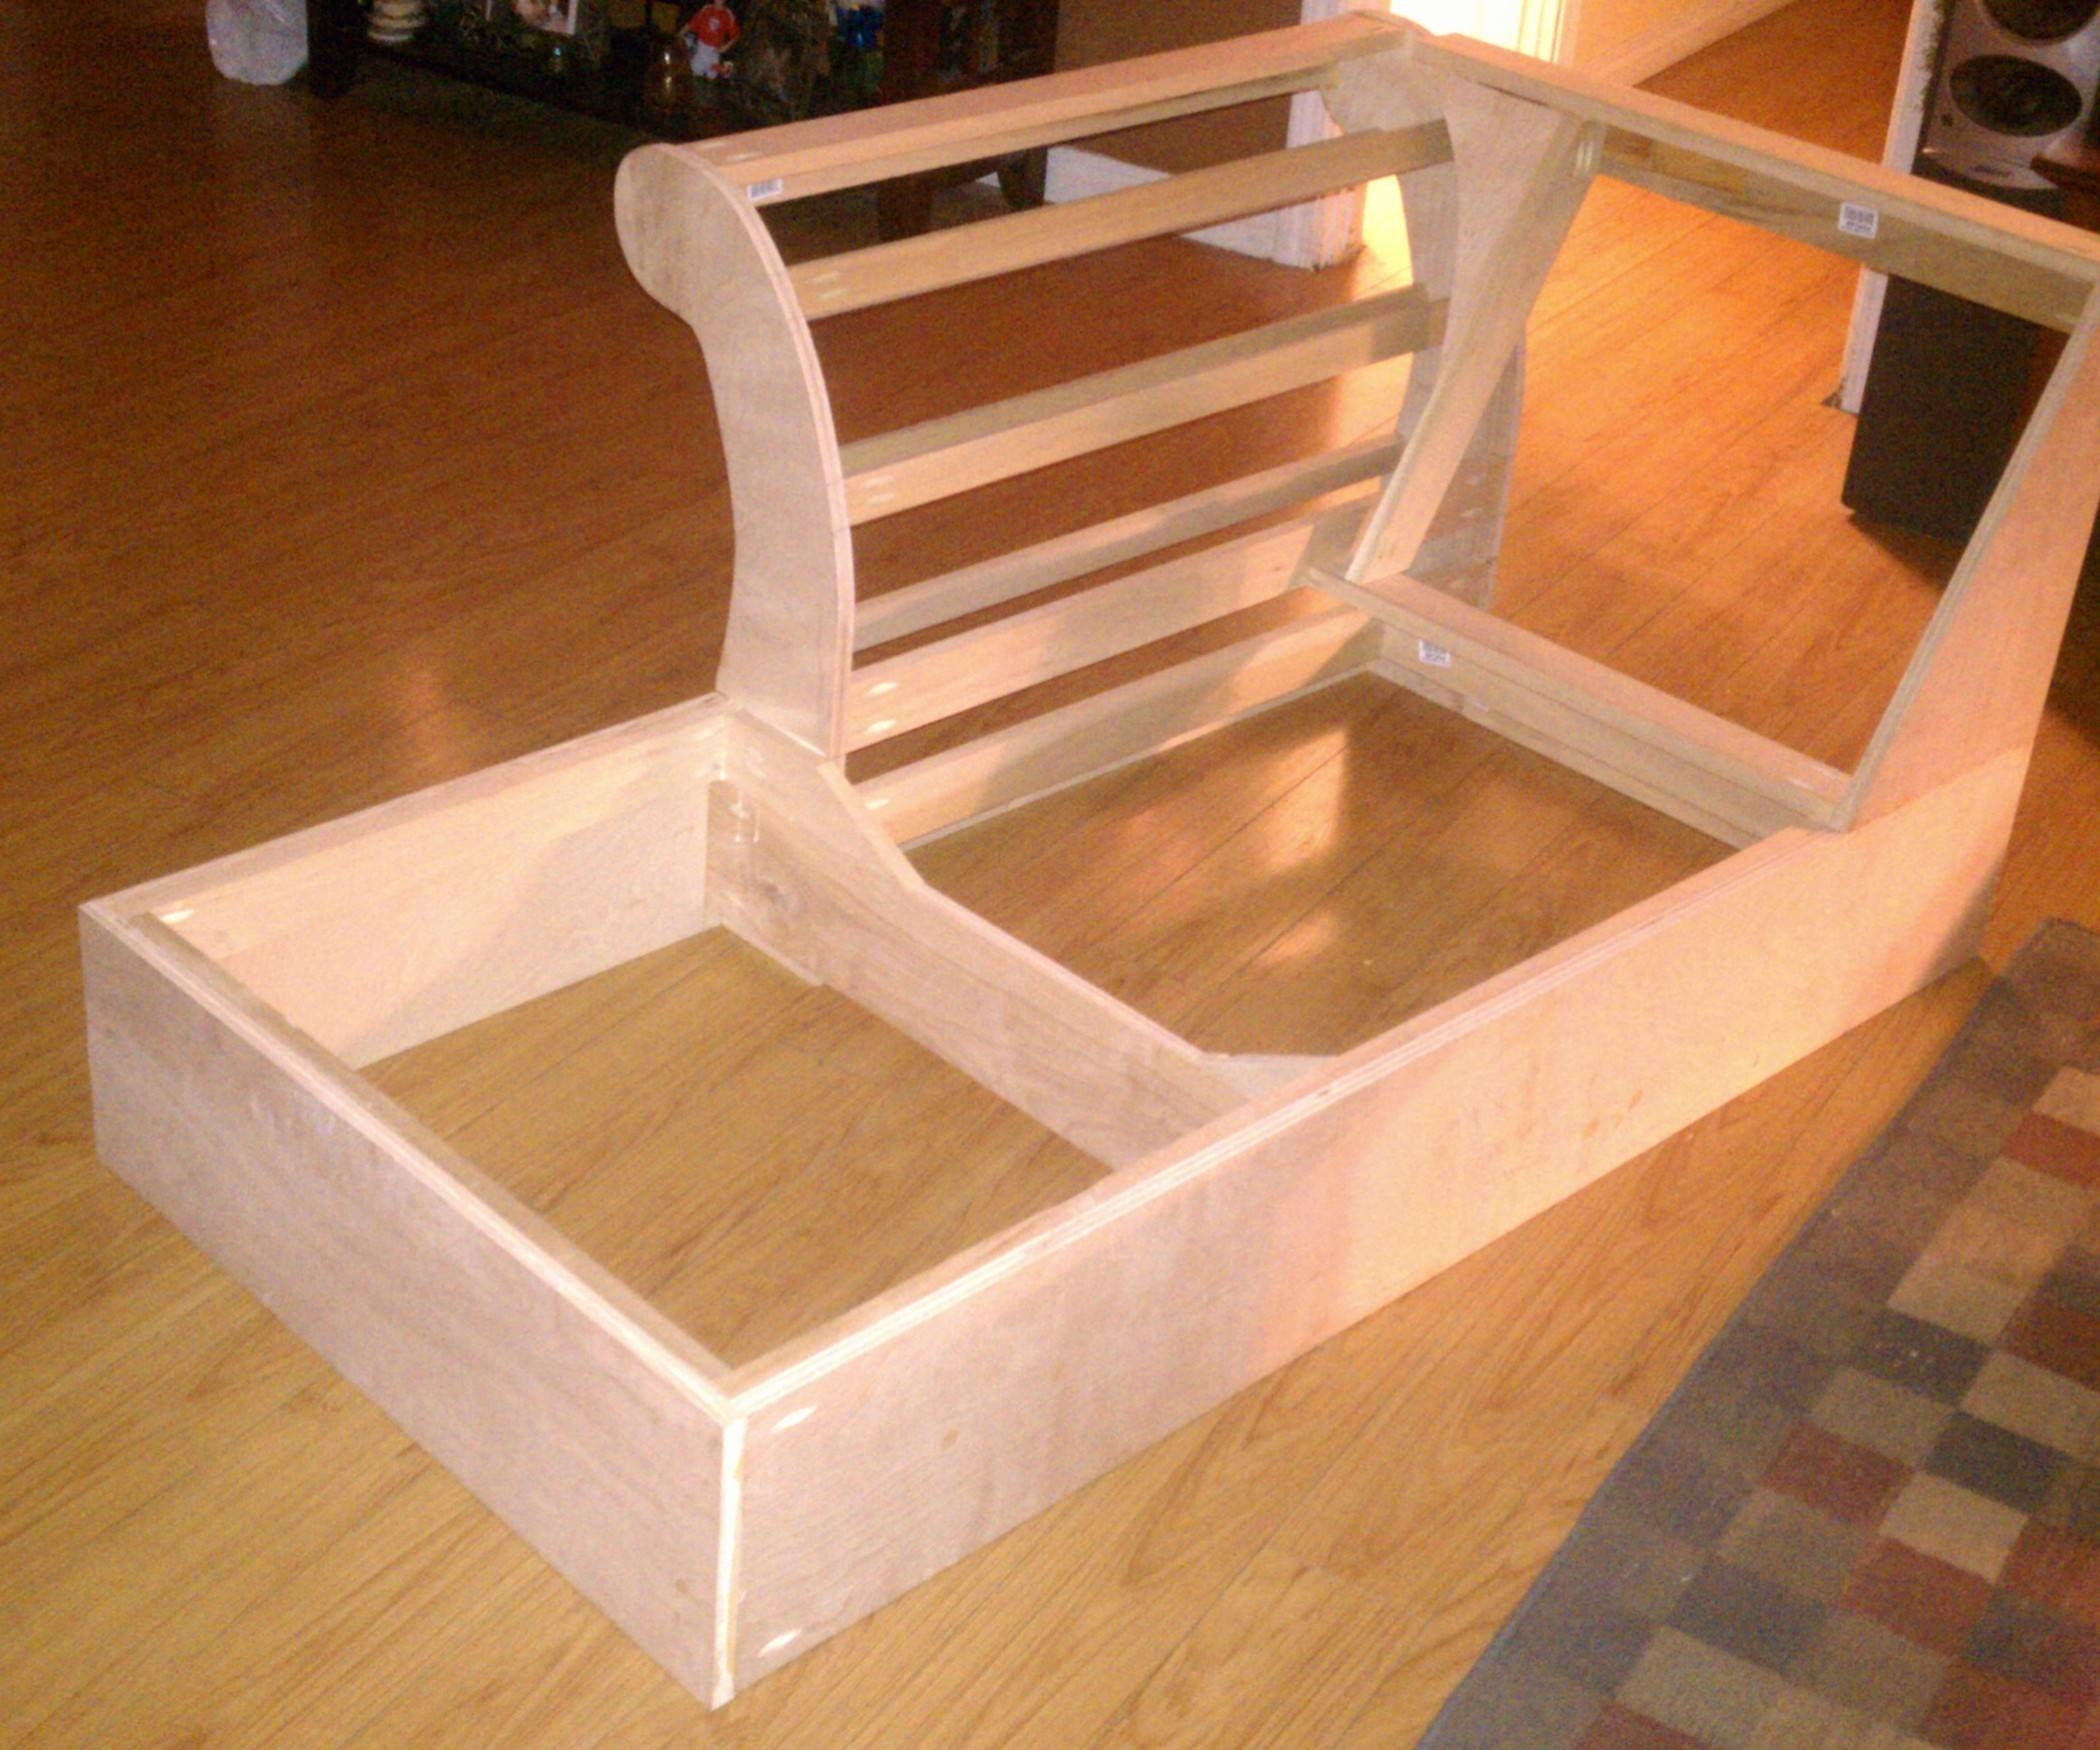 Build A Chaise Frame From Scratch: 5 Steps (With Pictures) within Diy Sofa Frame (Image 9 of 30)